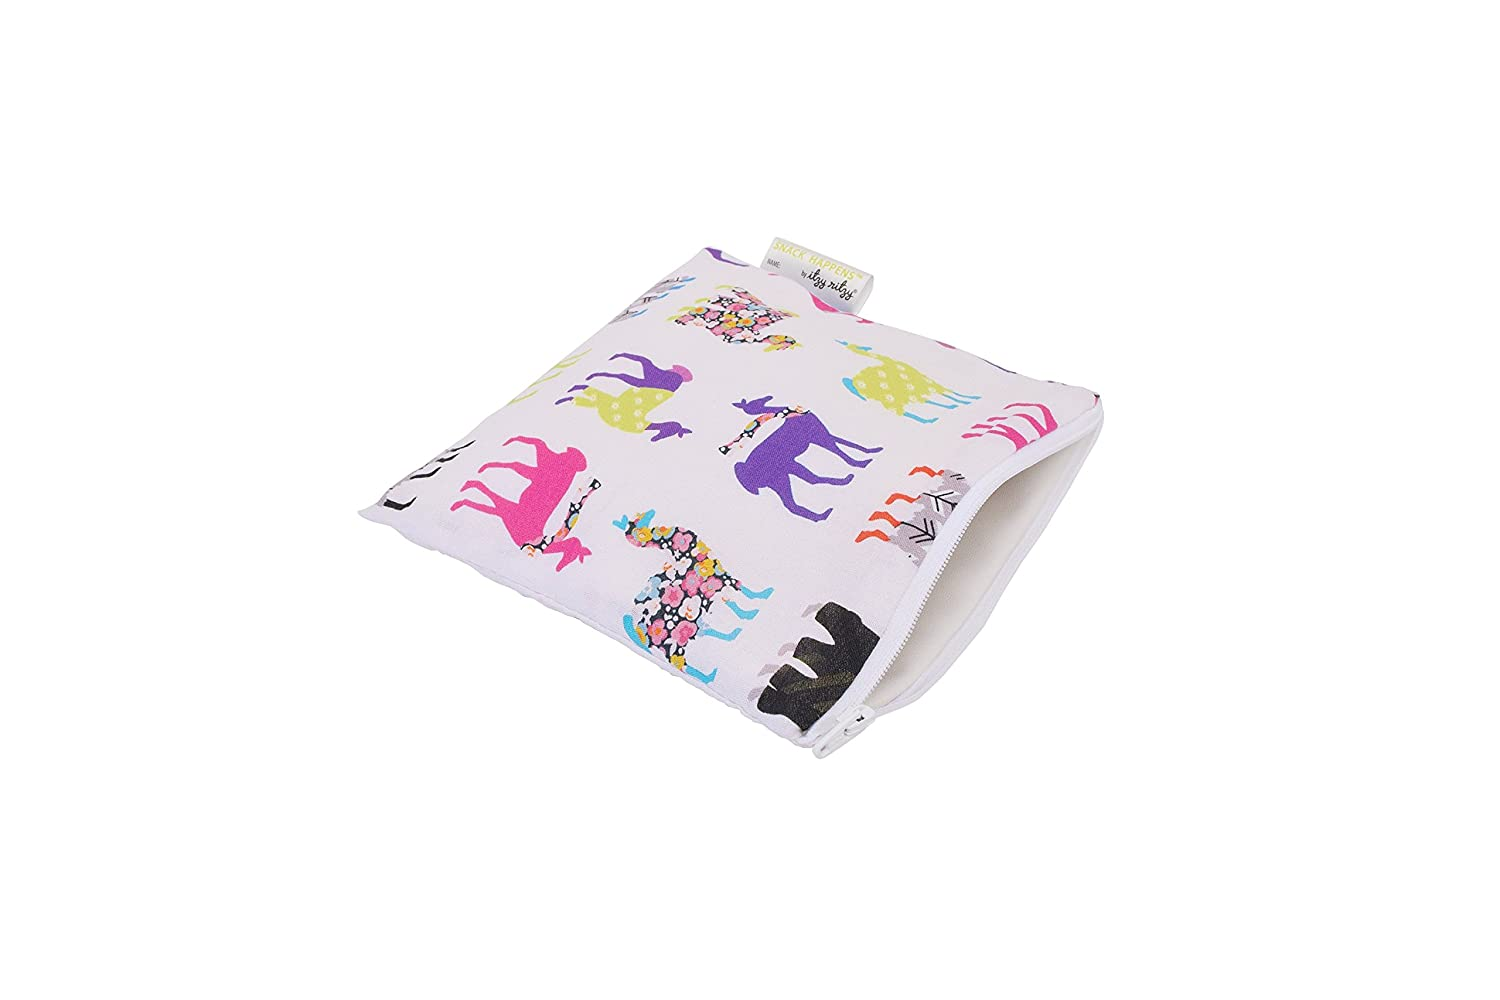 Itzy Ritzy IR-SWB8311 Snack Happens Reusable Snack and Everything Bag, Llama Glama